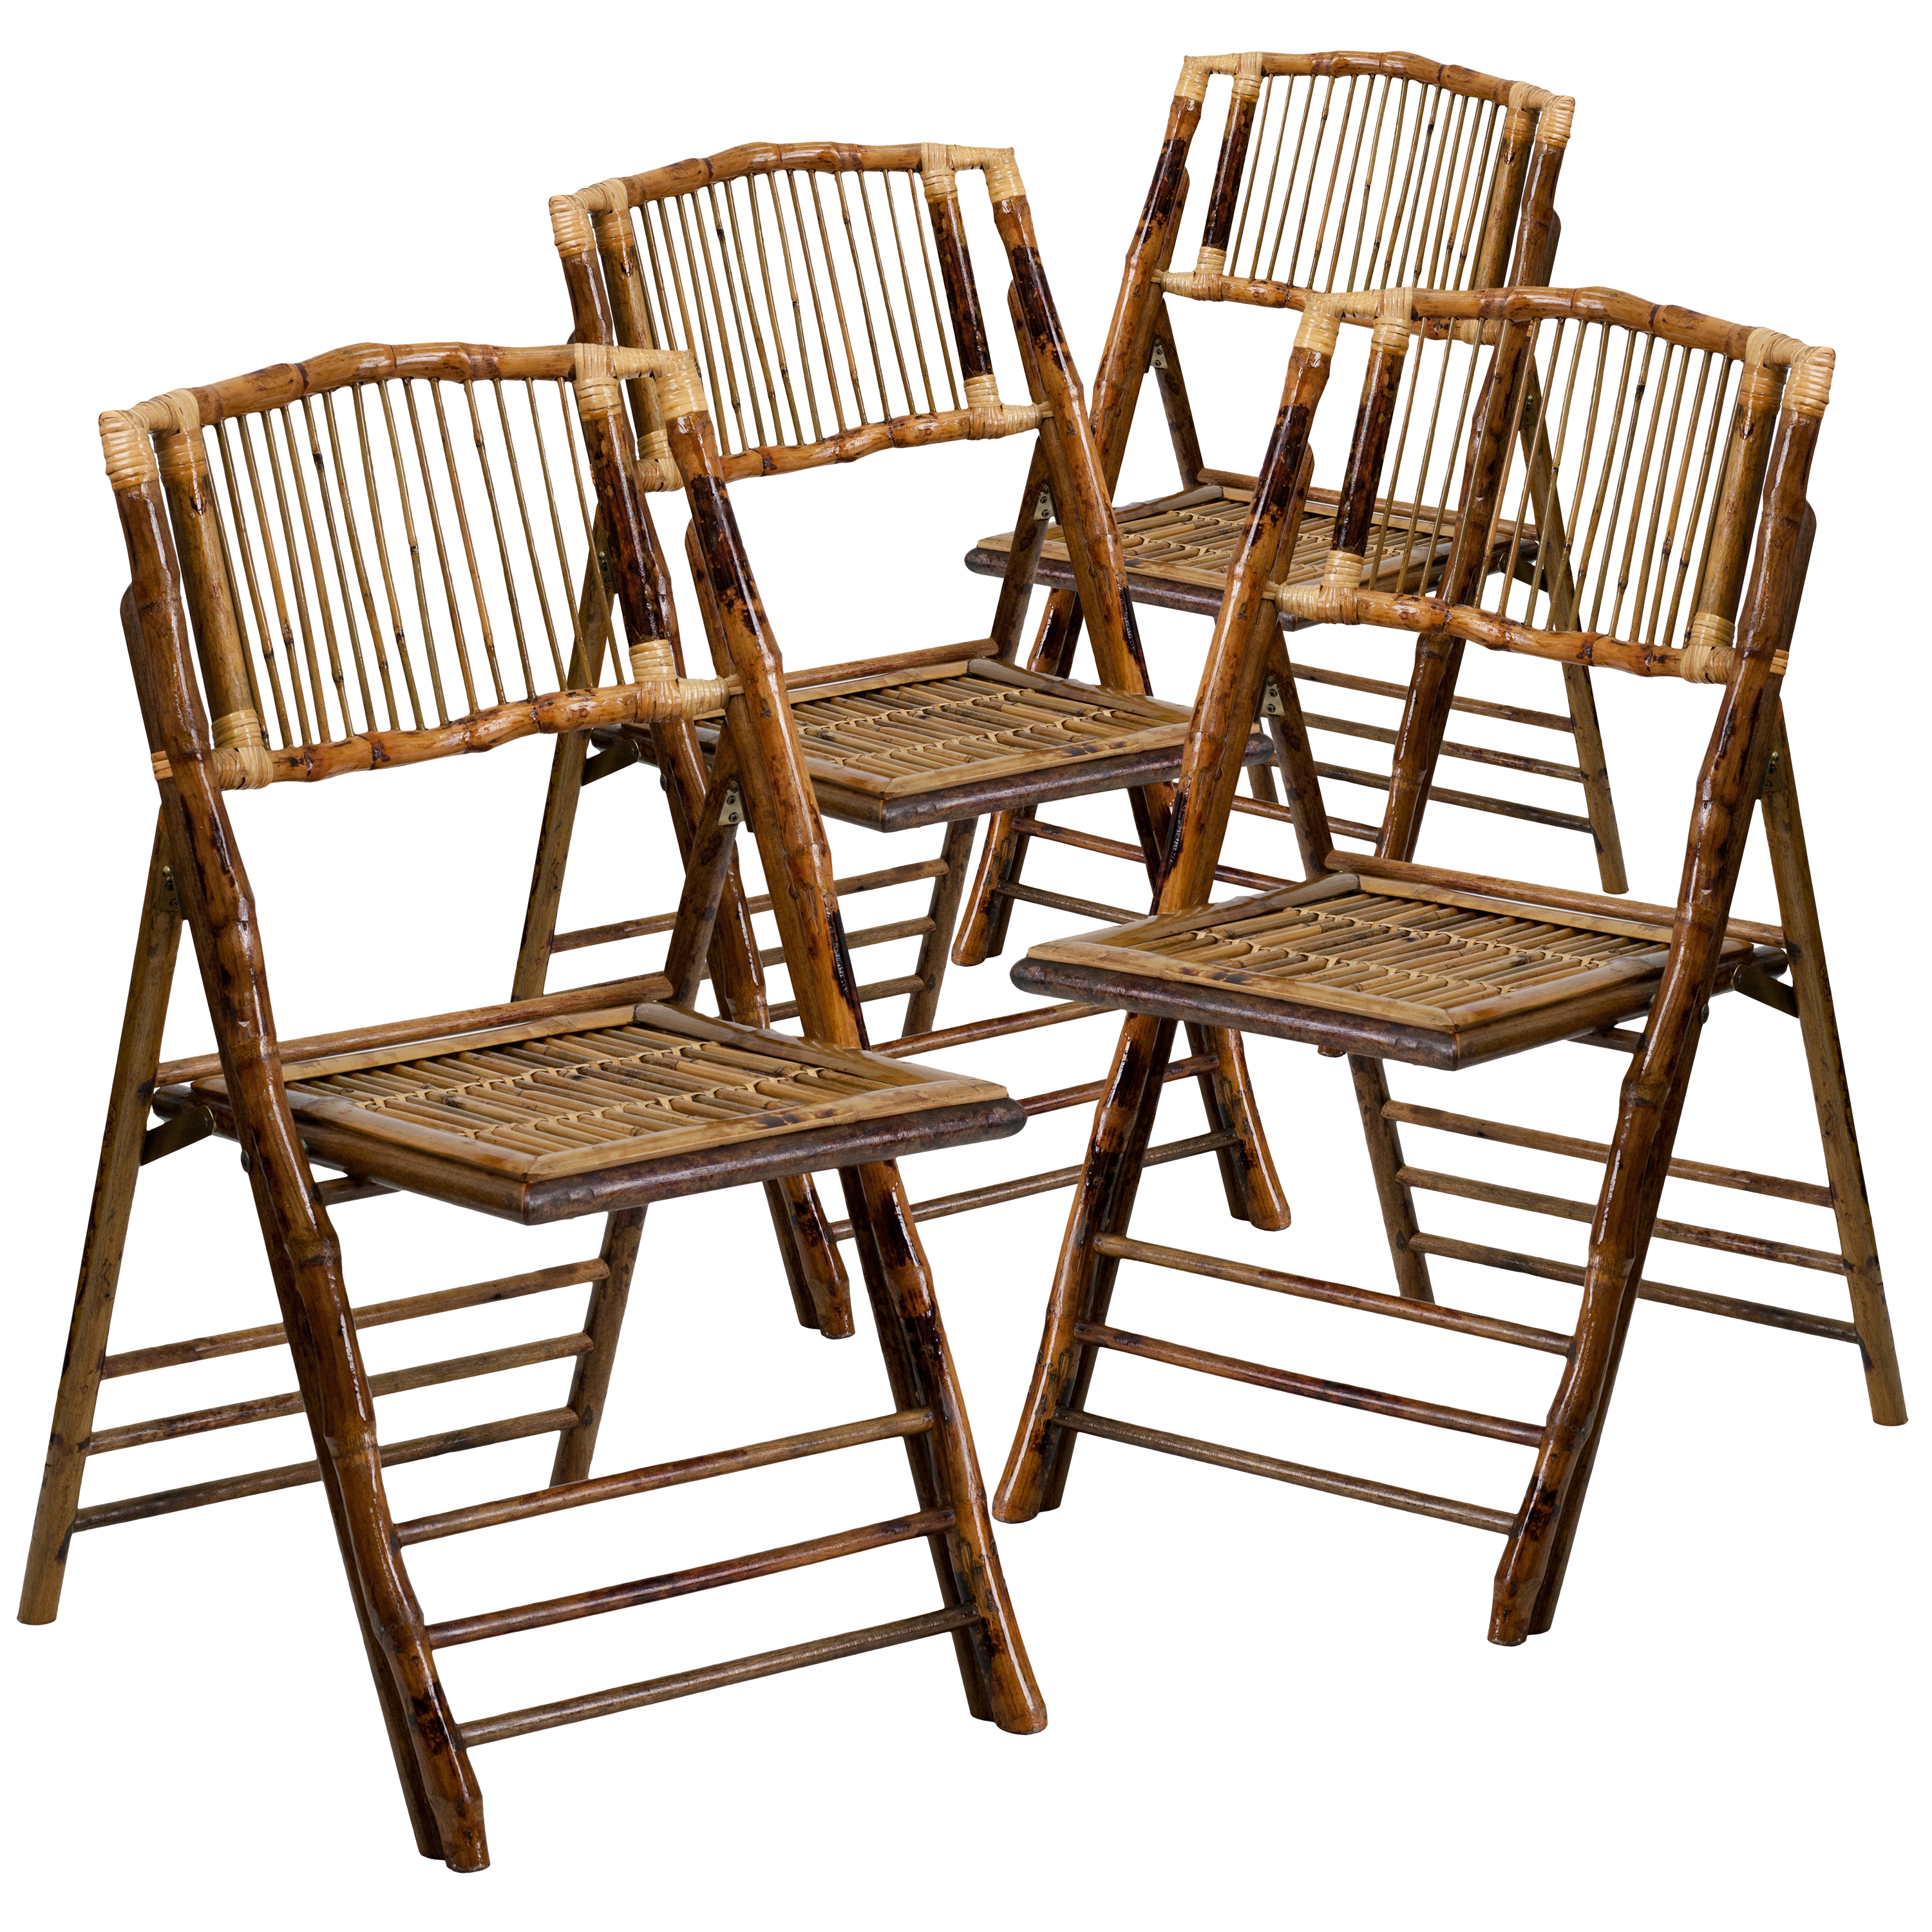 4 Pack American Champion Bamboo Folding Chair